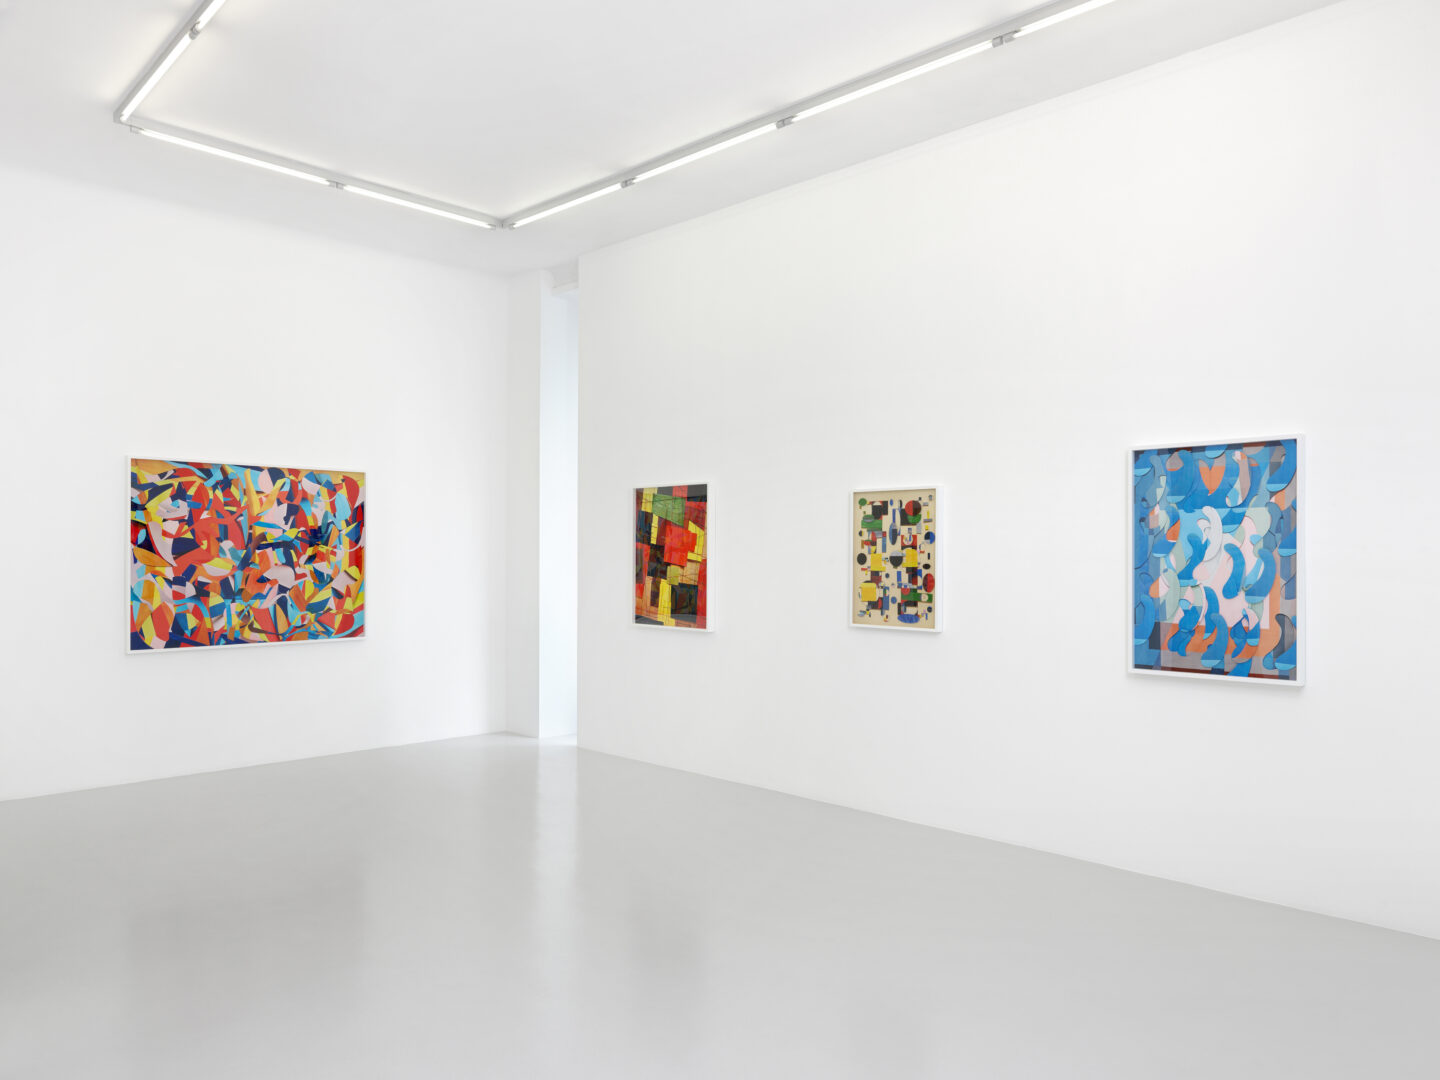 Exhibition View Vik Muniz Soloshow «Handmade» at Xippas, Geneva, 2019 / Photo: Annik Wetter / Courtesy: the artist and Xippas